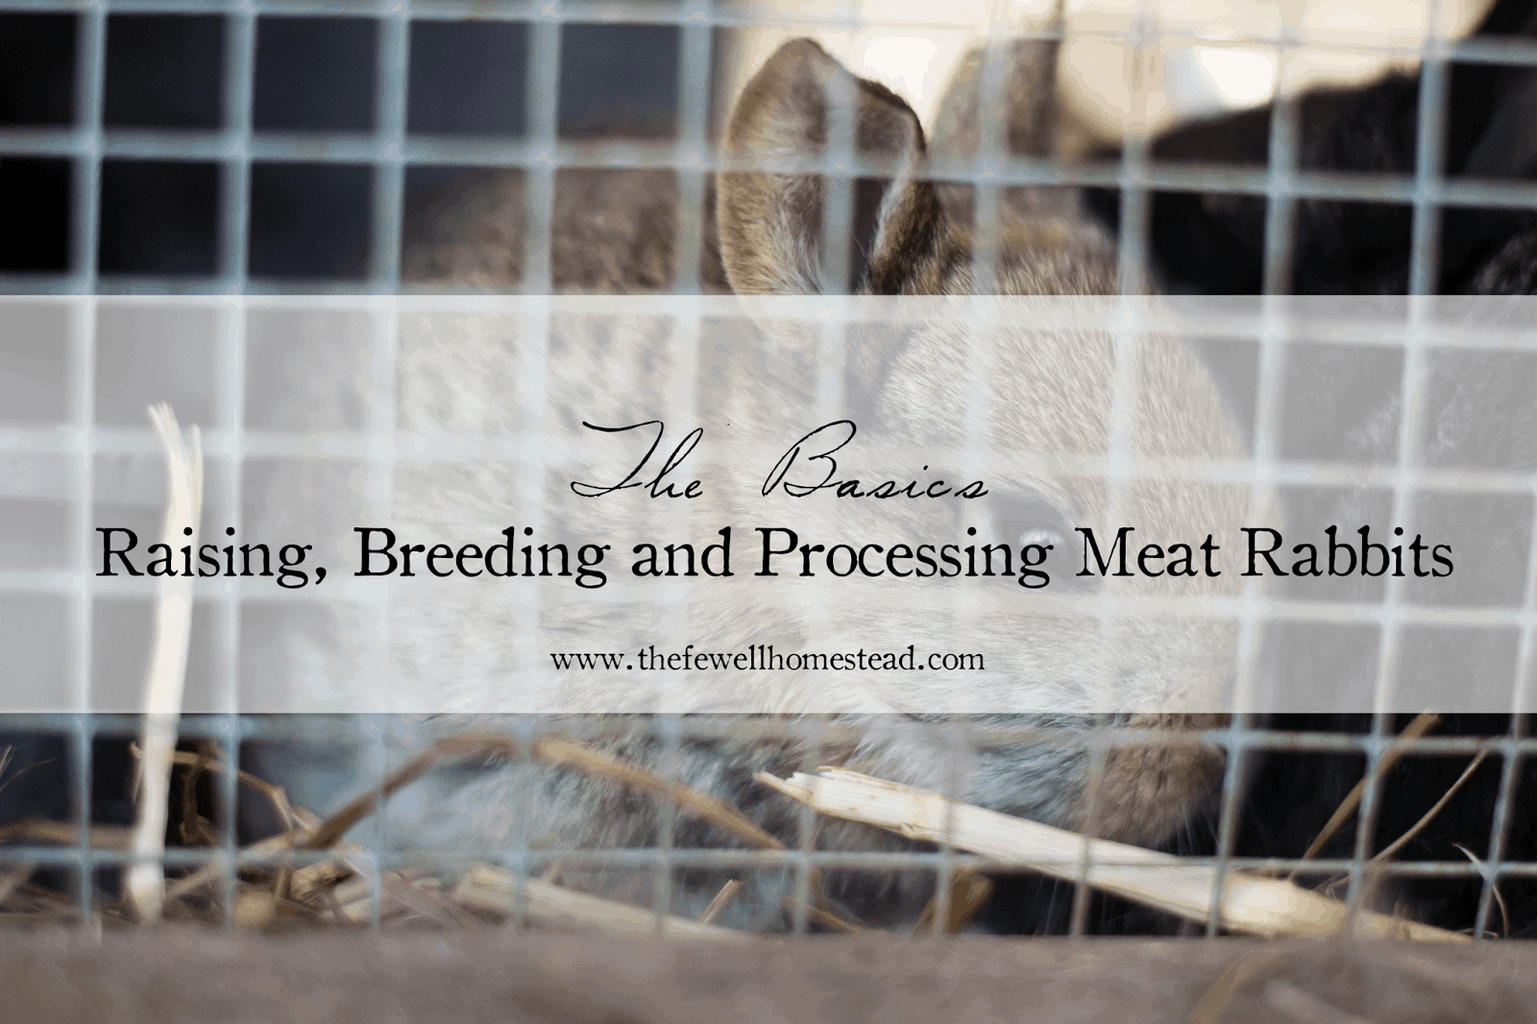 The Basics: Raising, Breeding and Processing Meat Rabbits